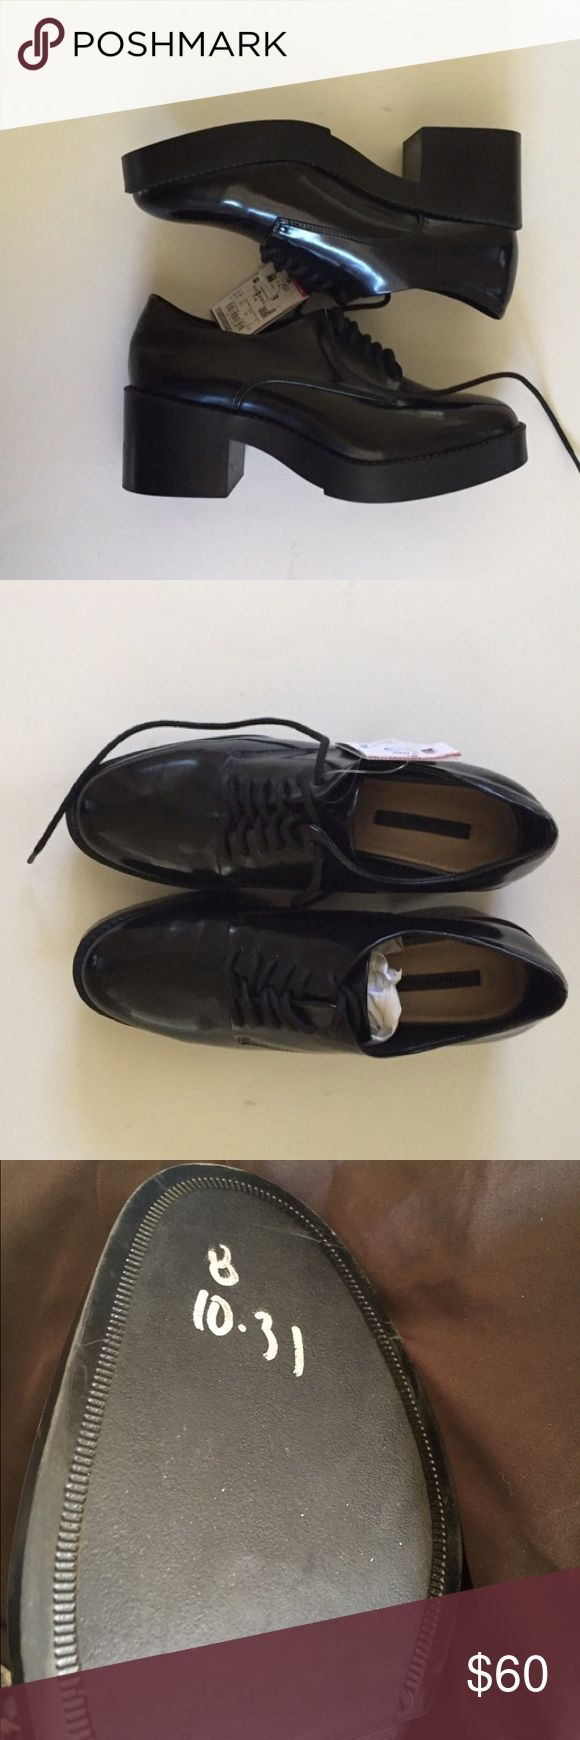 NEW Black leather laced oxfords 9 Never used. No box. Small marking on sole zara  Shoes